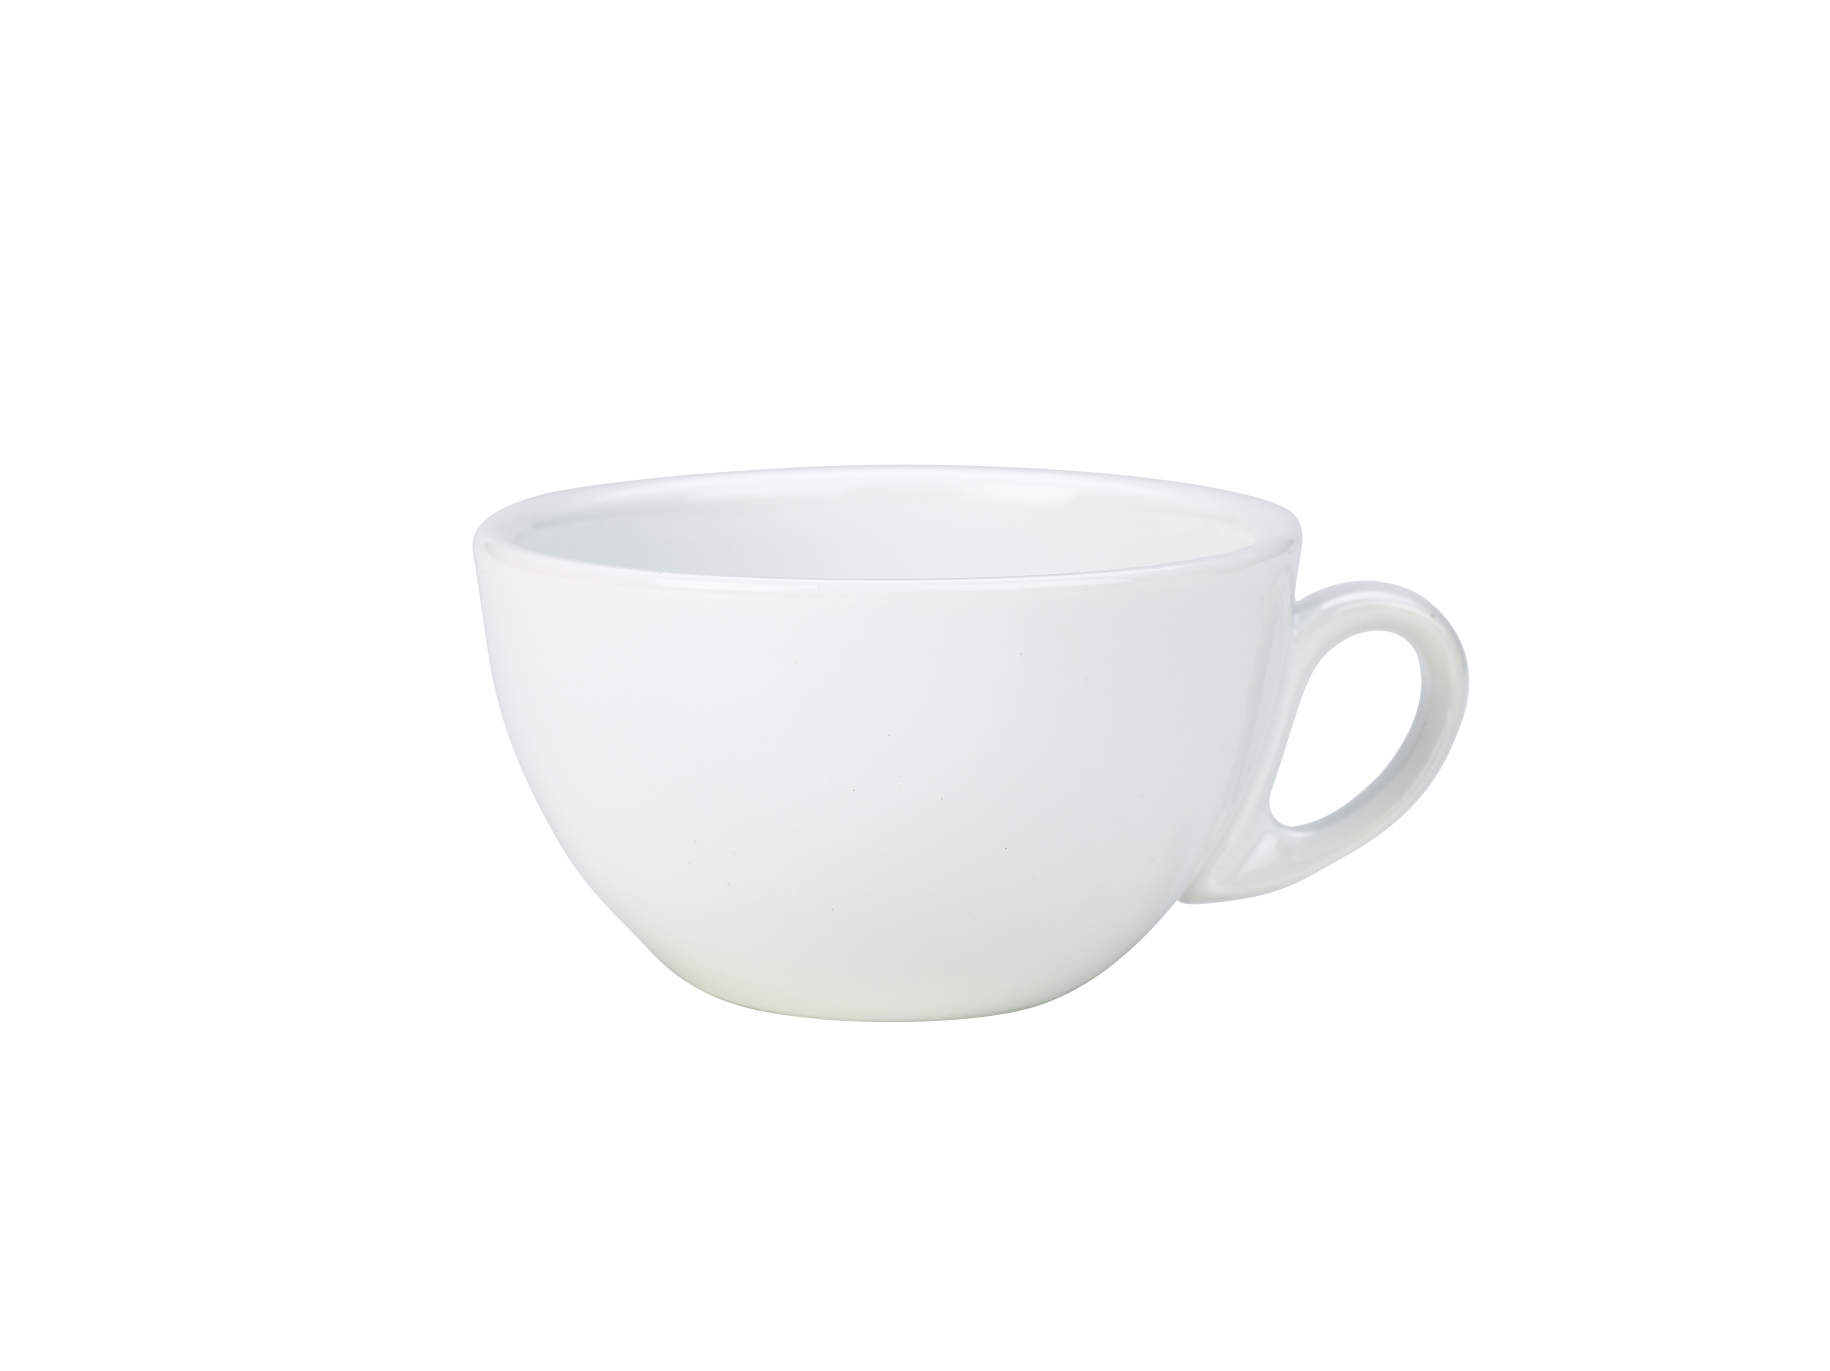 Genware Porcelain Italian Style Espresso Cup 9cl